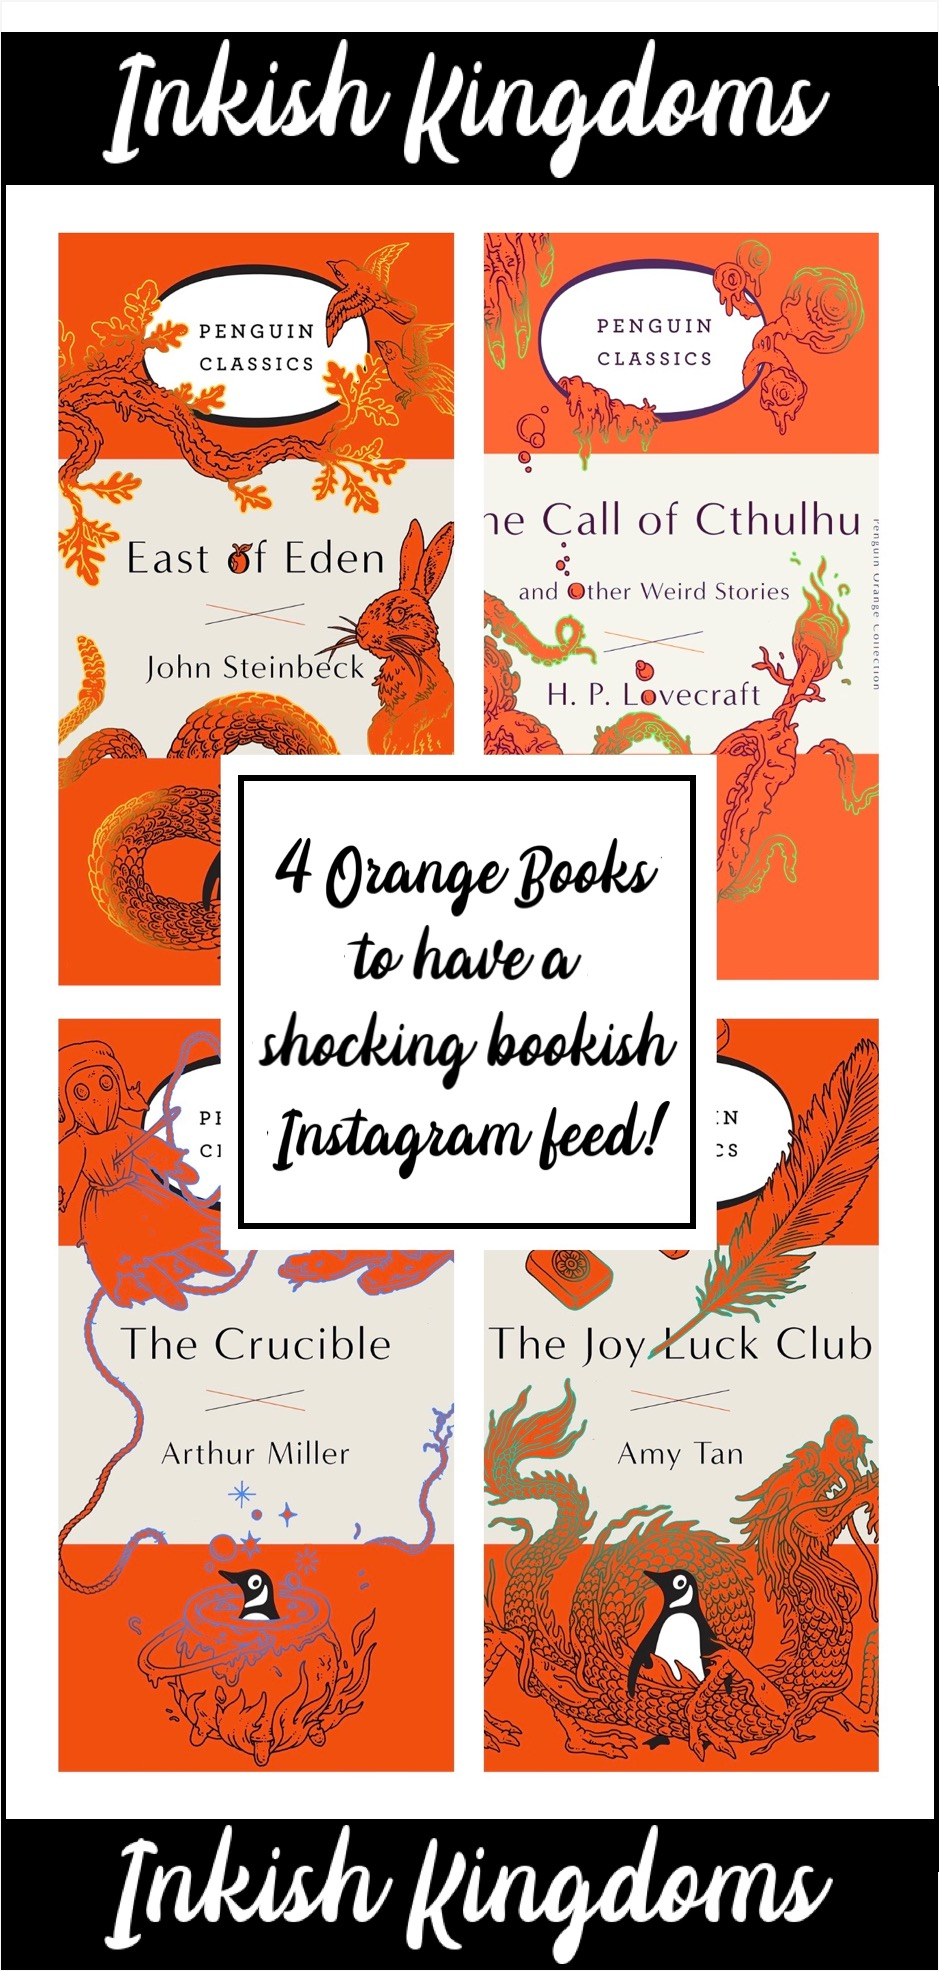 4 orange books to have a shocking bookish Instagram feed!